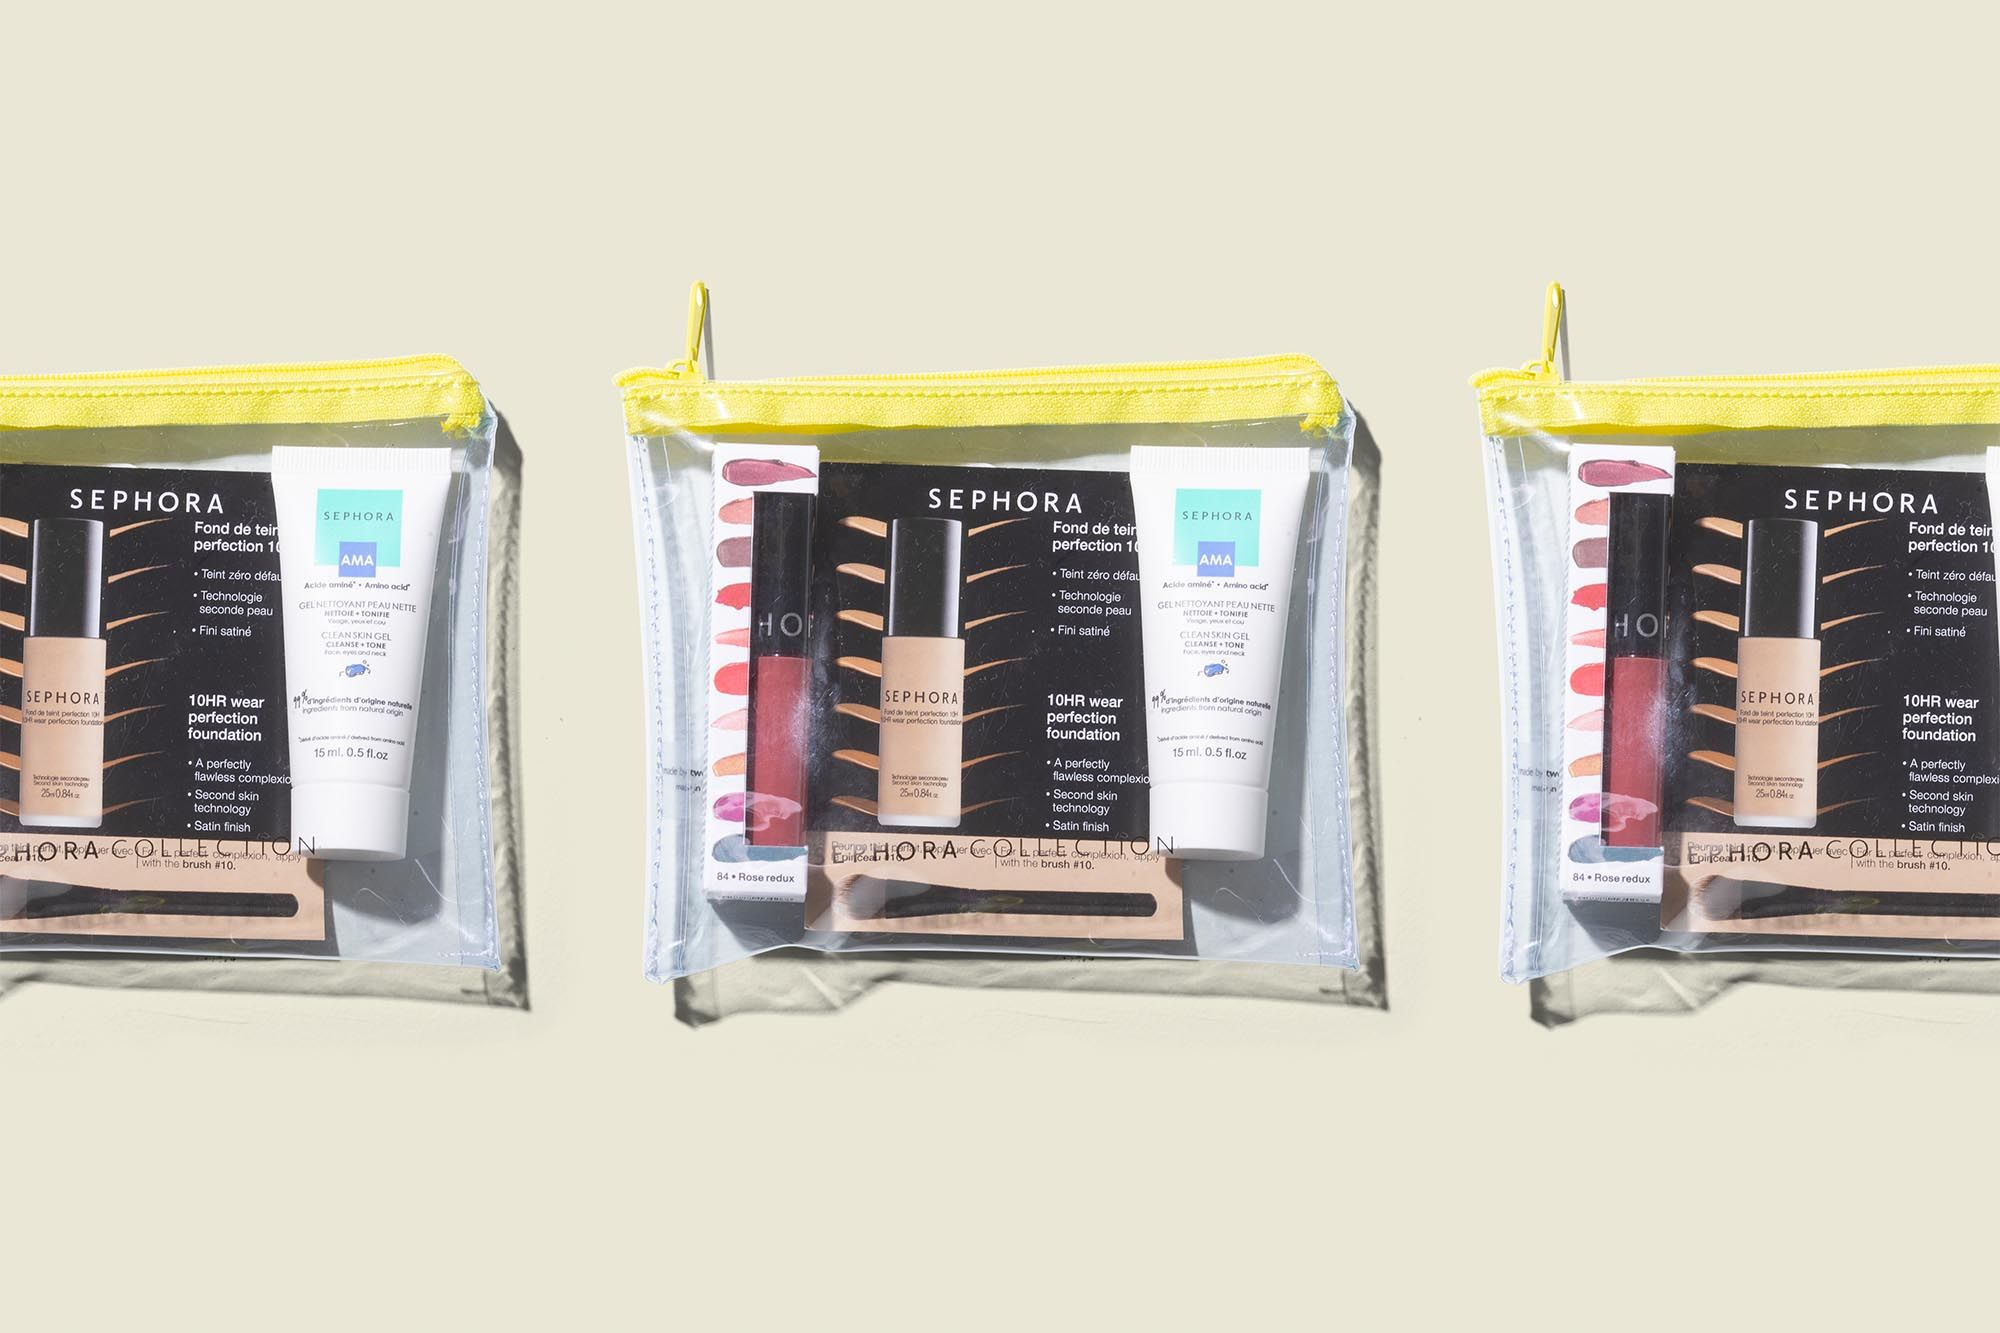 Clear zip pouches with beauty products